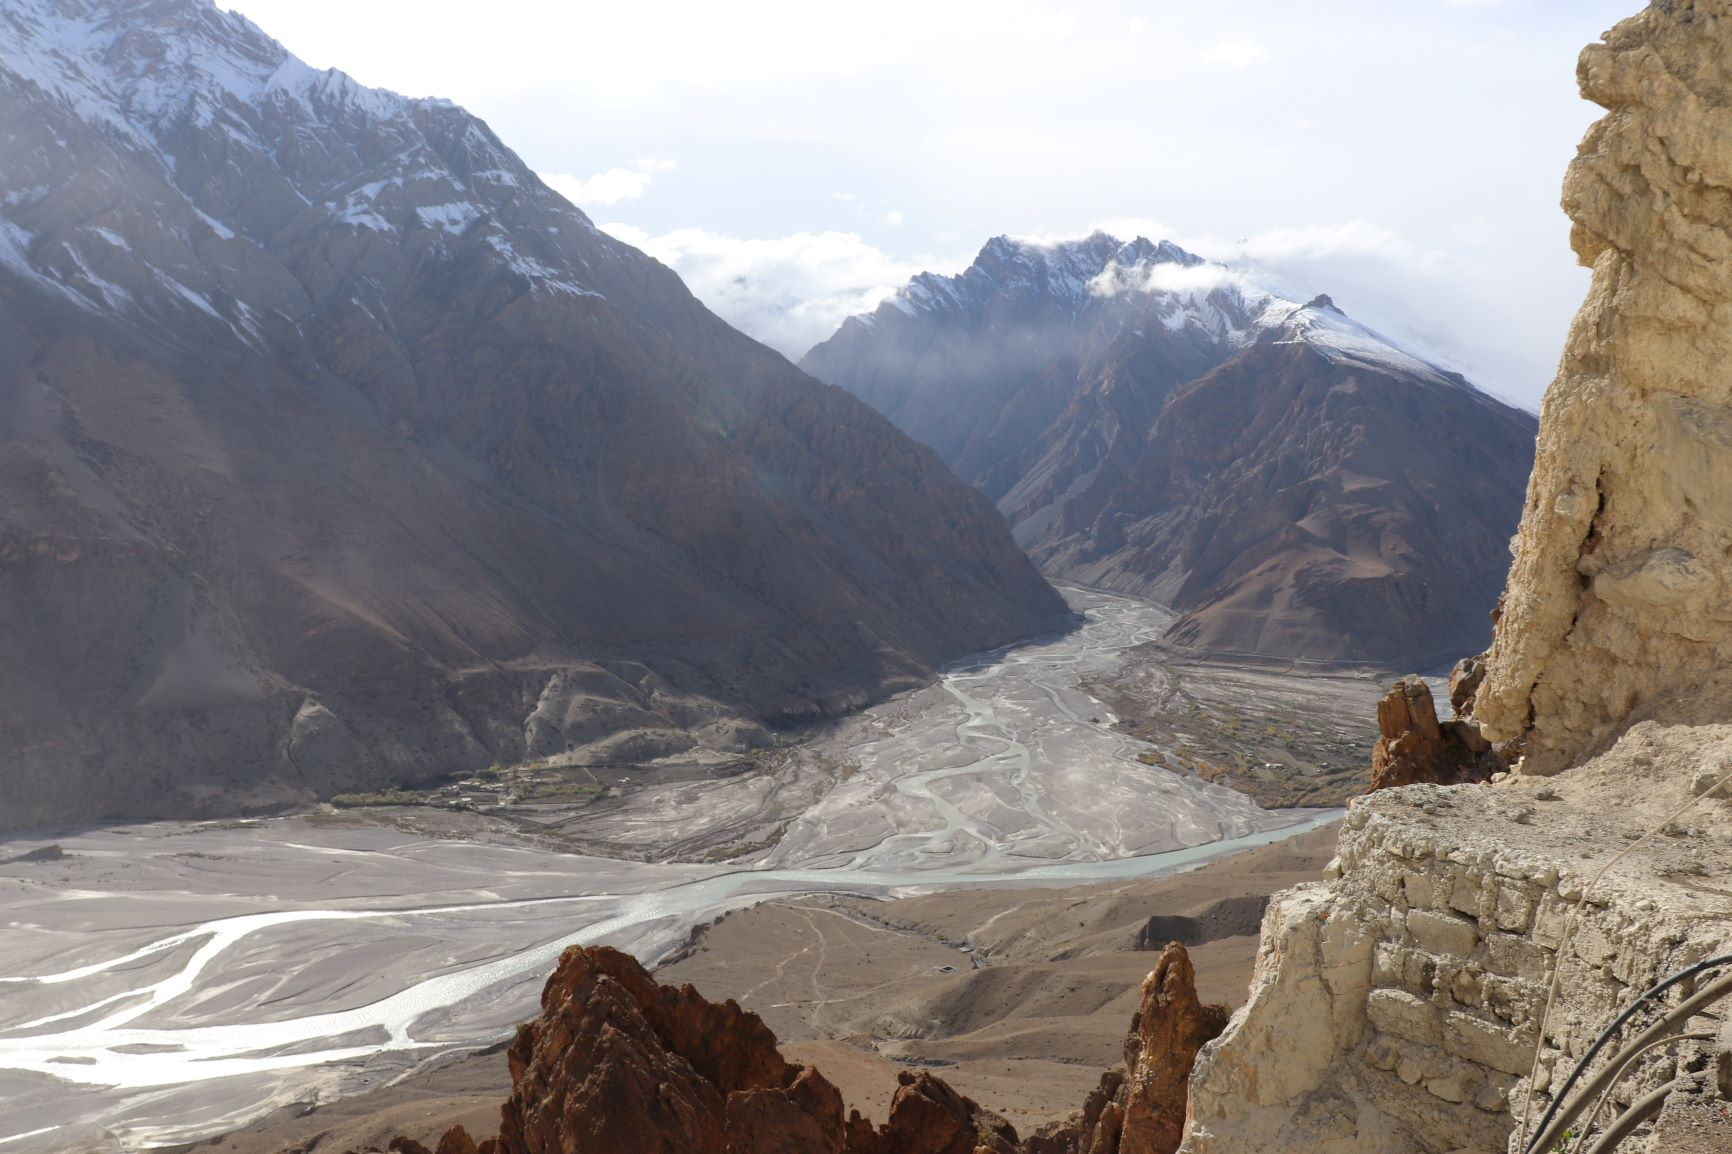 View from Dhankar monastery